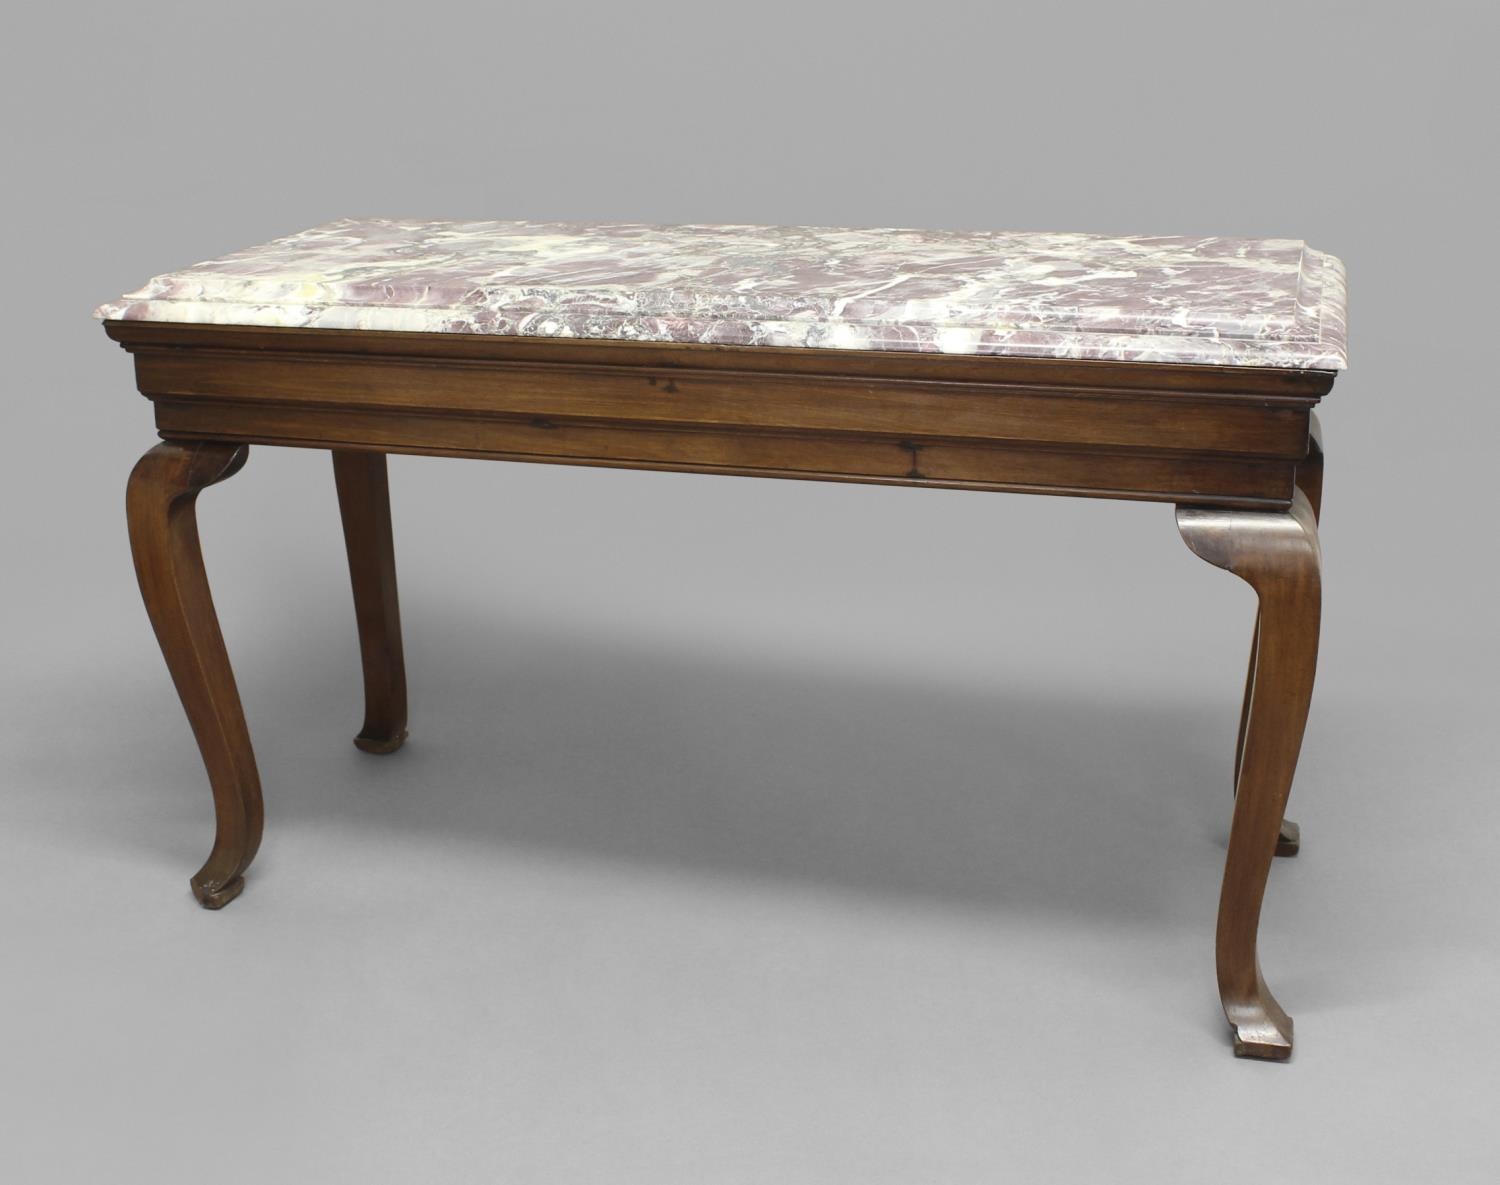 A MARBLE TOPPED CONSOLE TABLE, the rectangular top on a mahogany frame with Queen Anne style legs, - Image 2 of 2